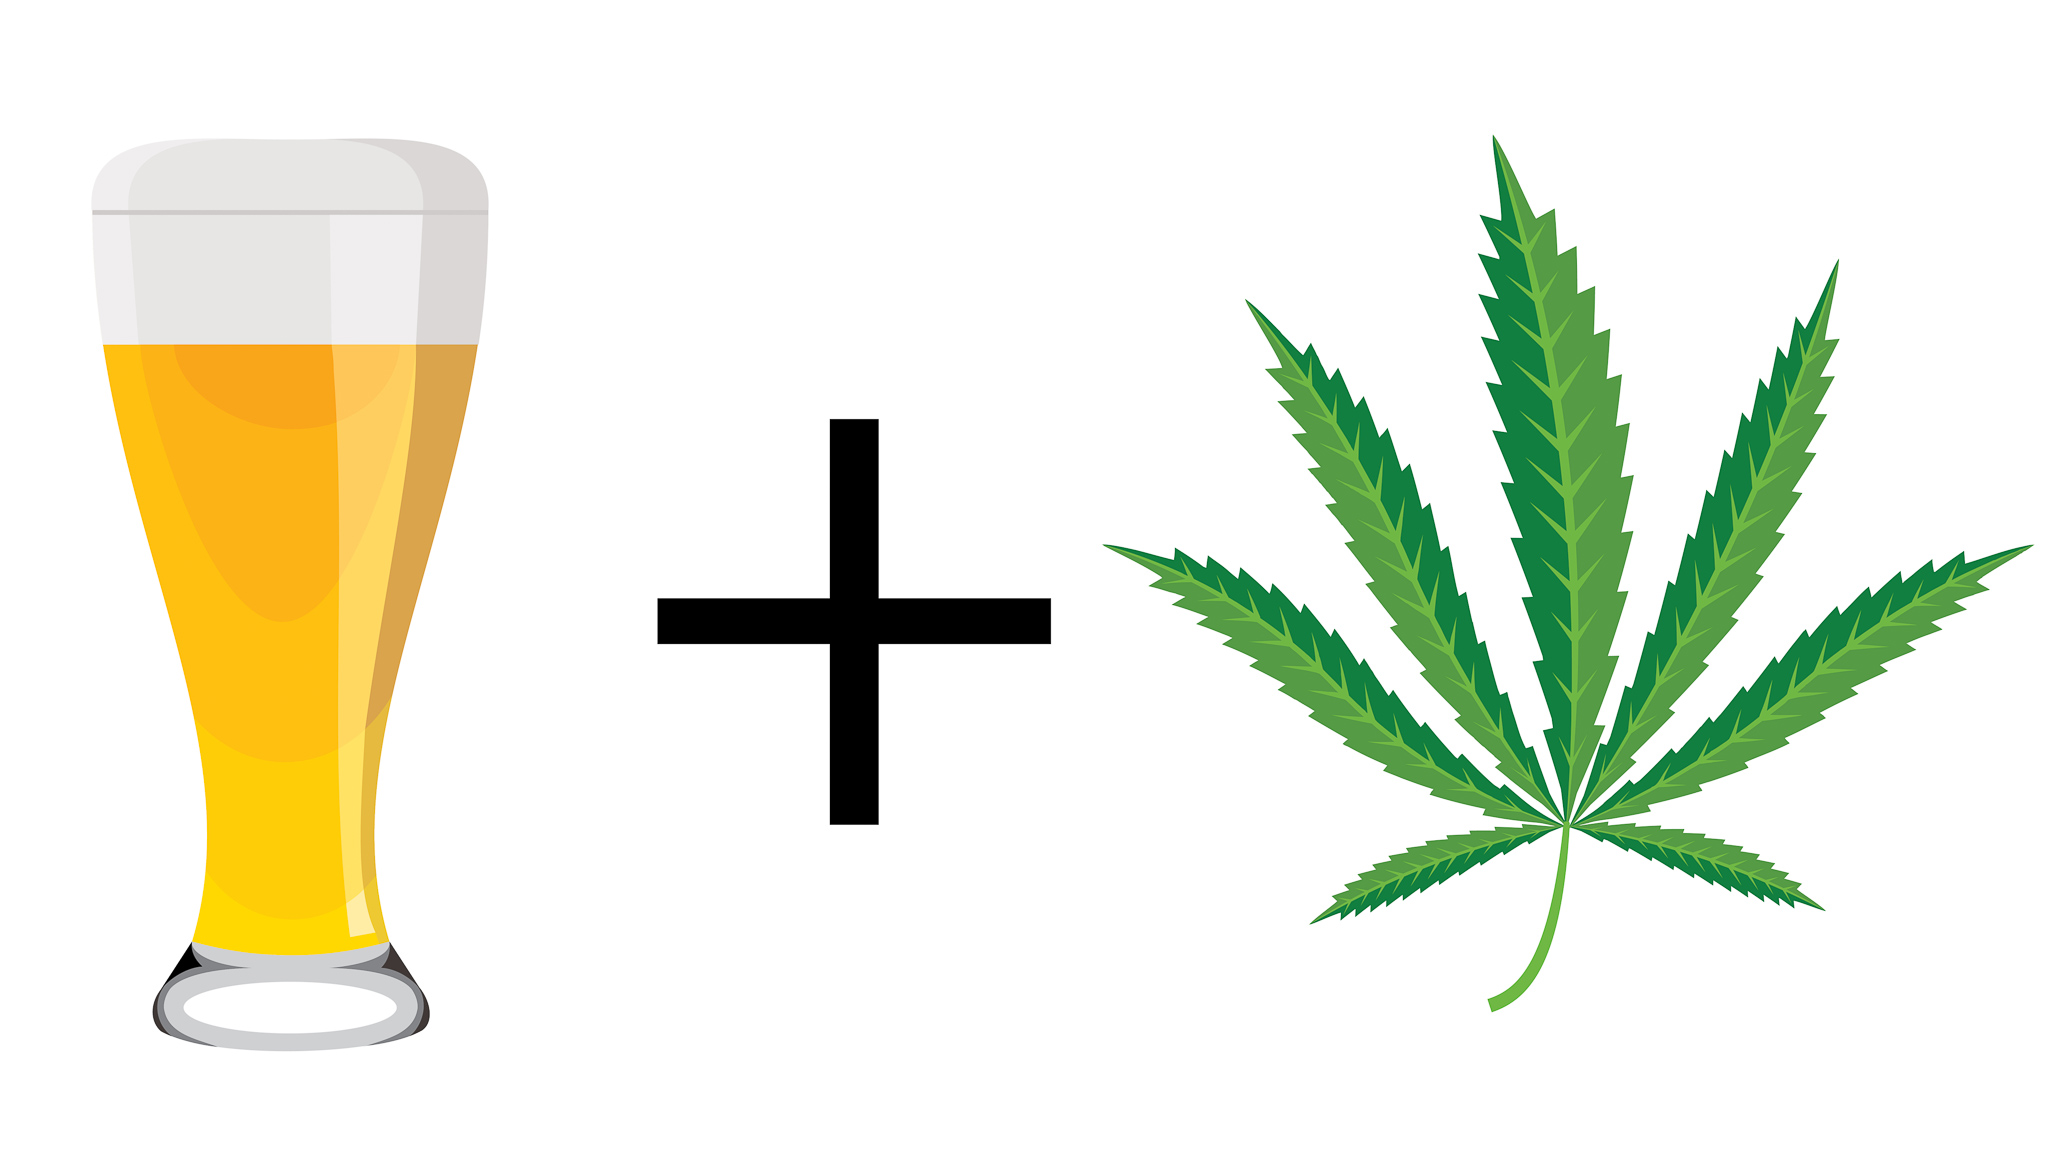 What's the relationship between cannabis and hops